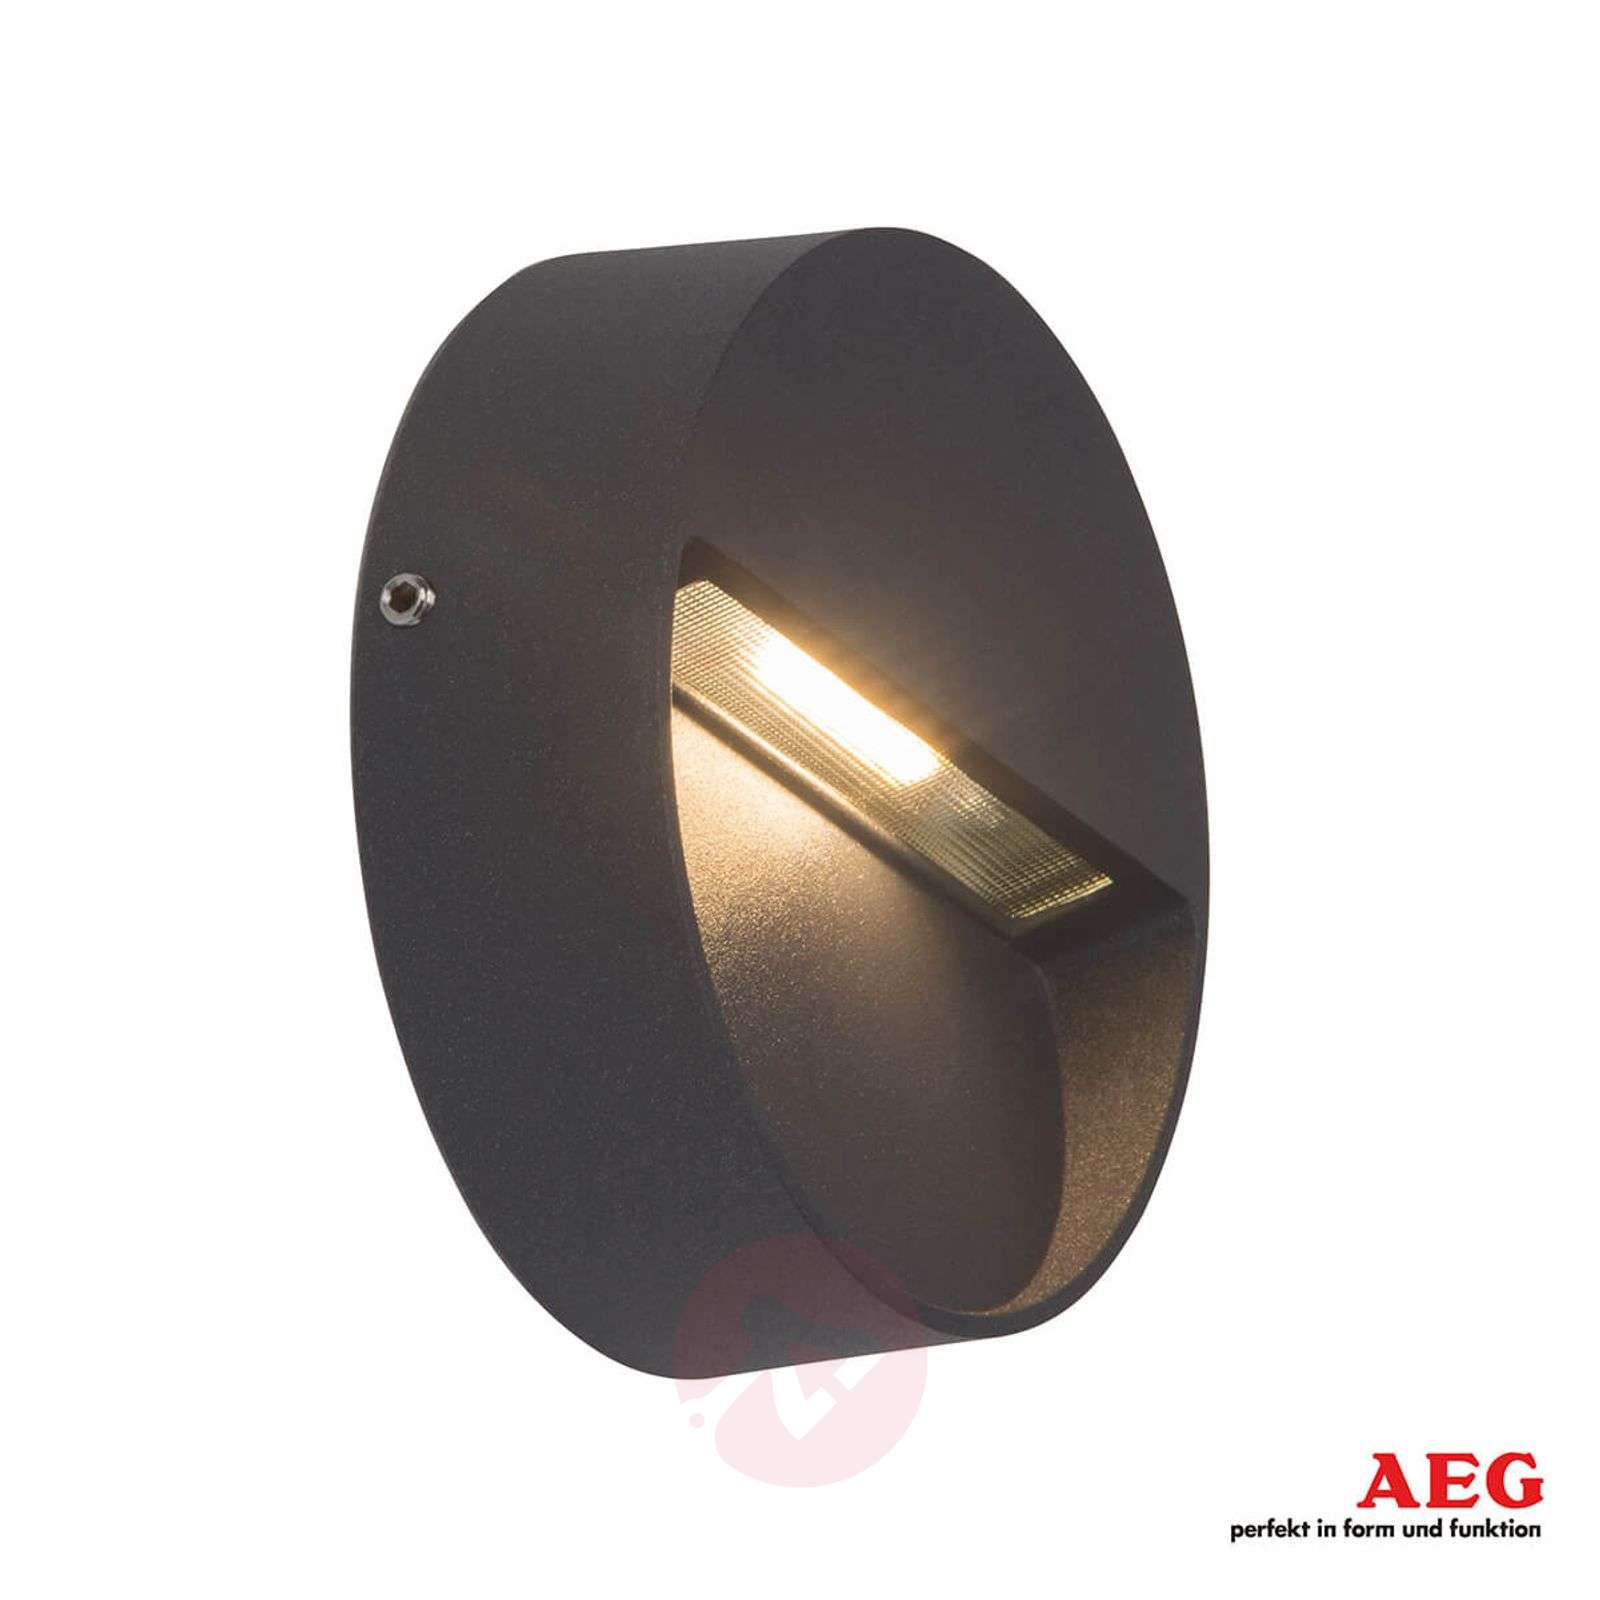 Acquista applique per esterni led front tonda antracite lampade